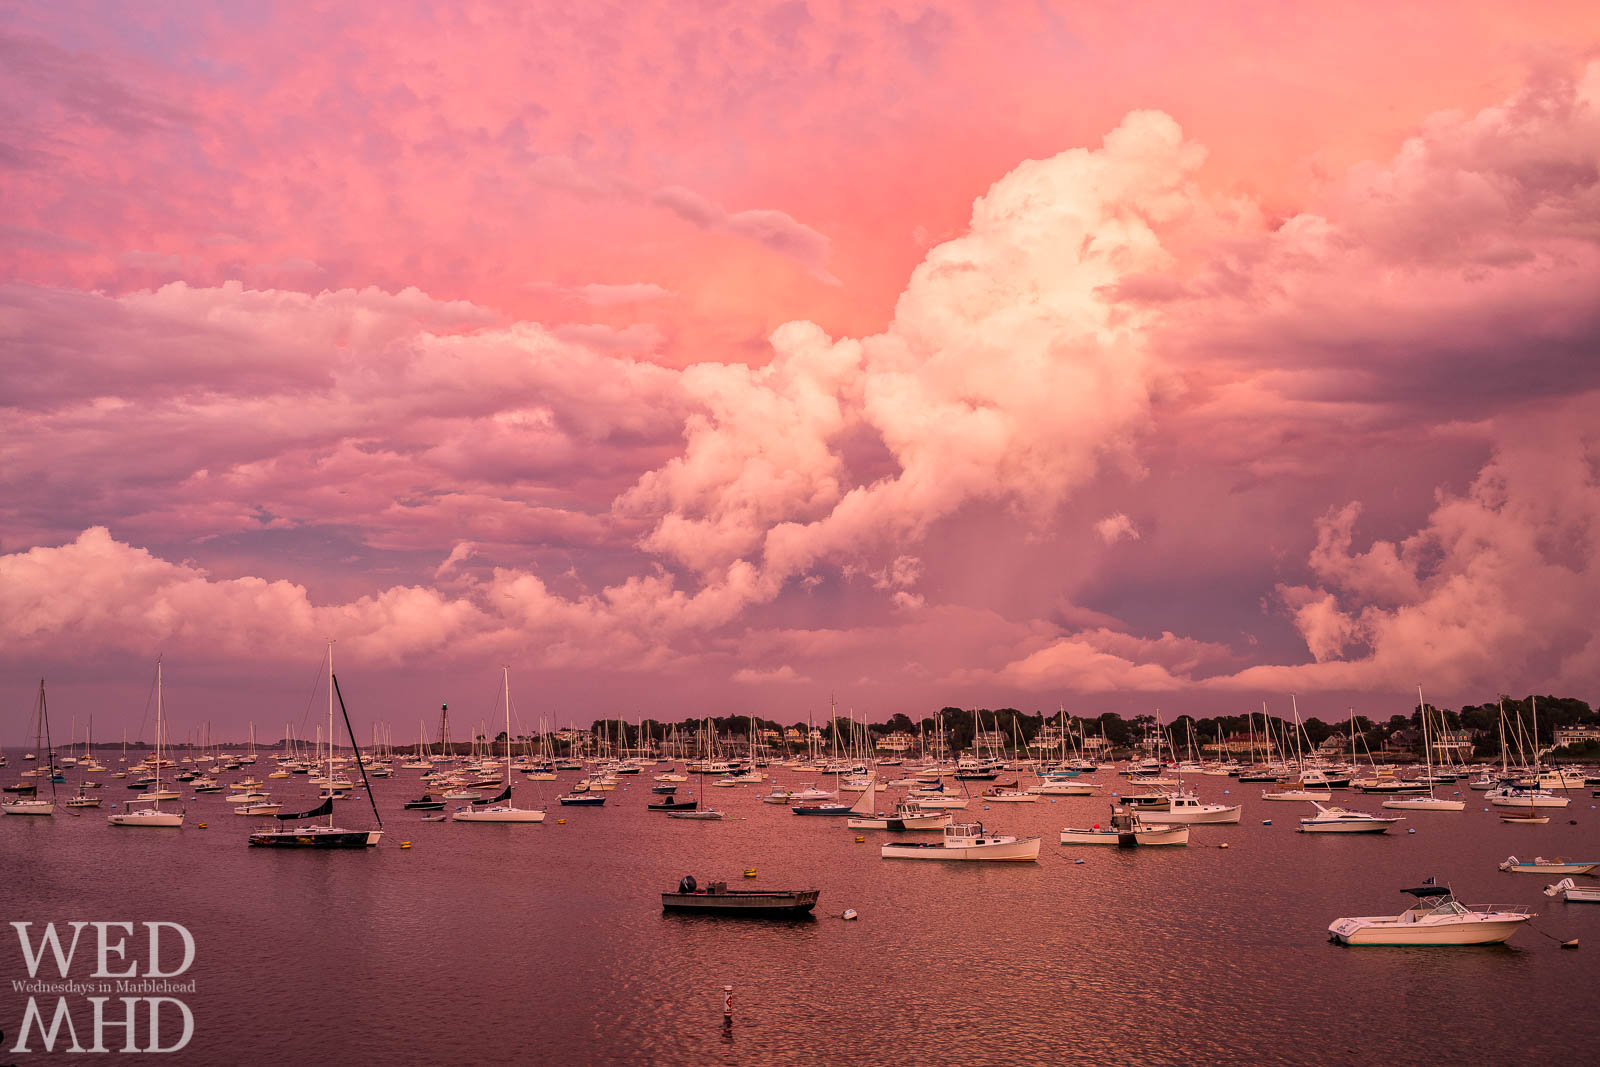 Clouds and light come together to form an incredible September sunset over Marblehead harbor with every mooring occupied by boats and the lighthouse beacon shining